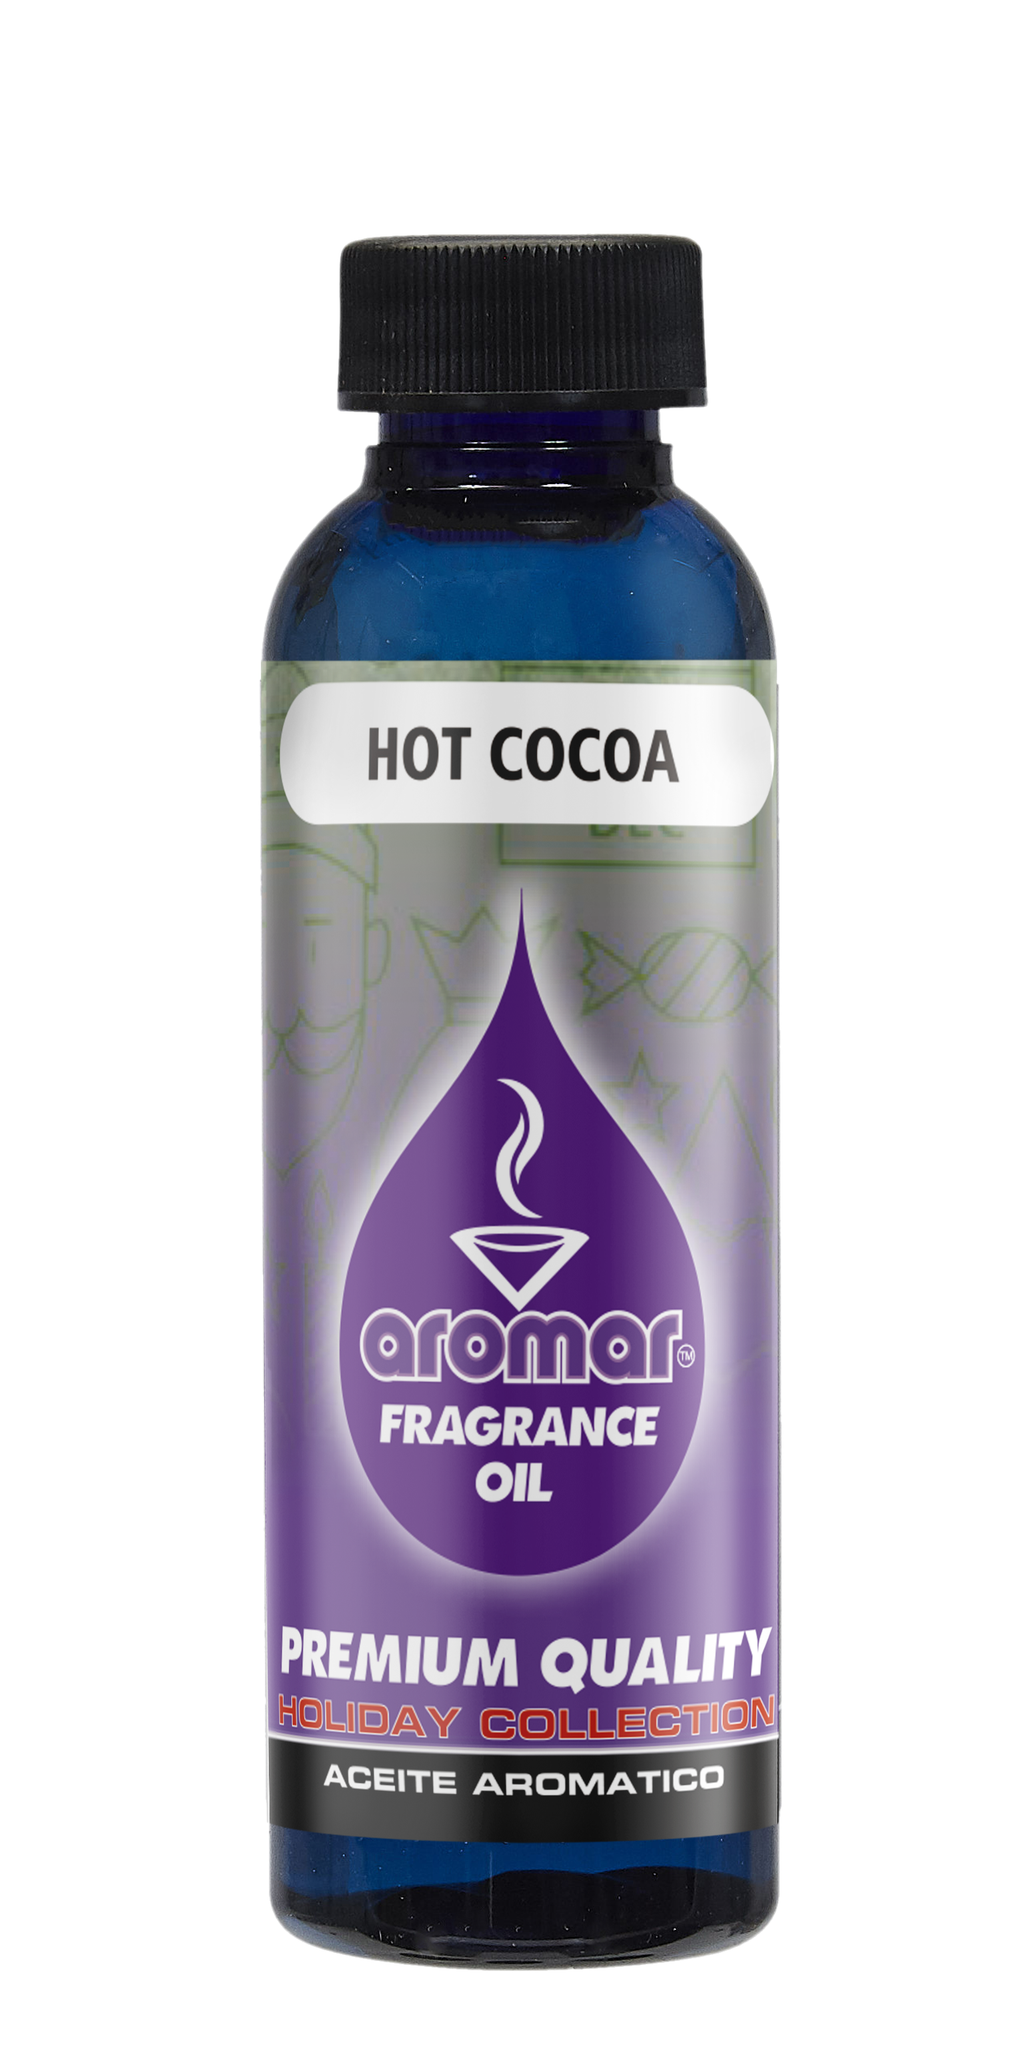 Hot Cocoa Fragrance Oil